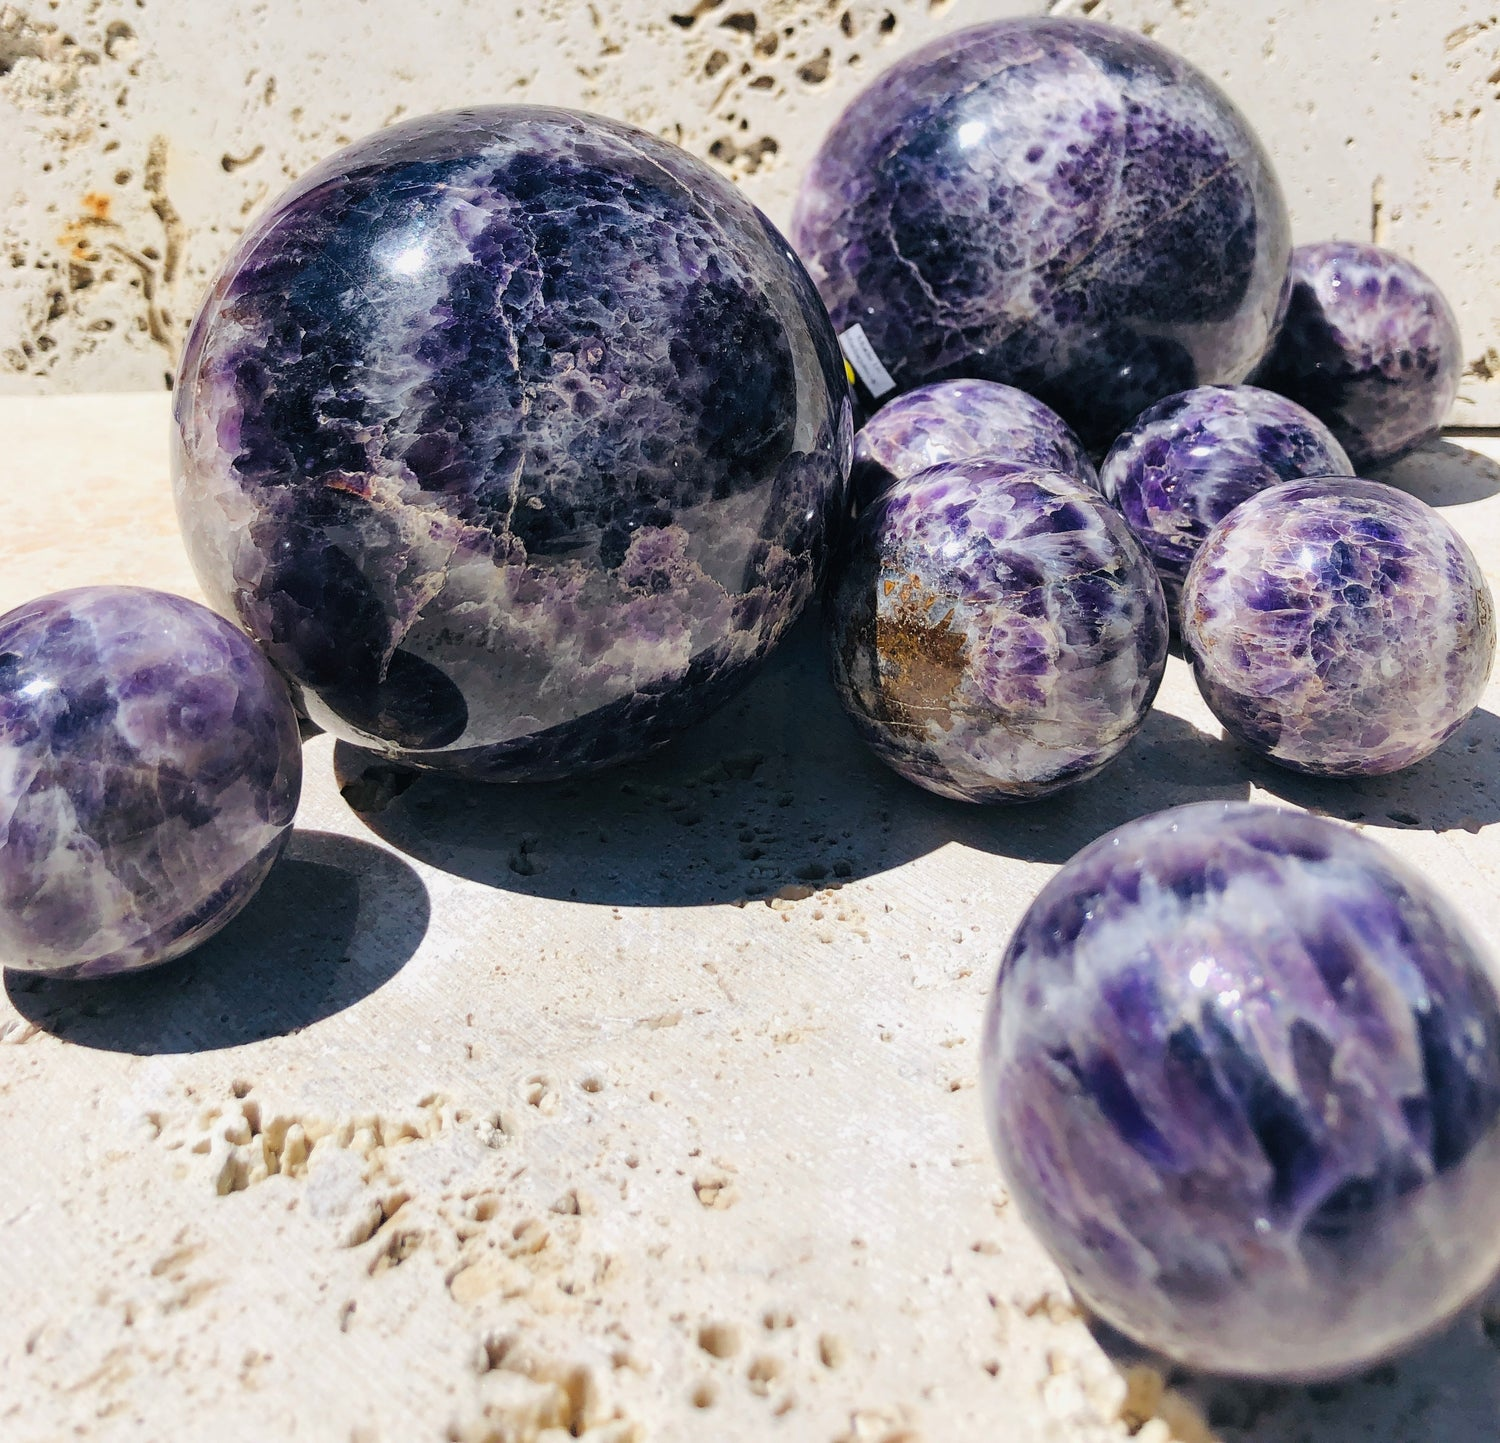 Chevron Amethyst Spheres from Madagascar